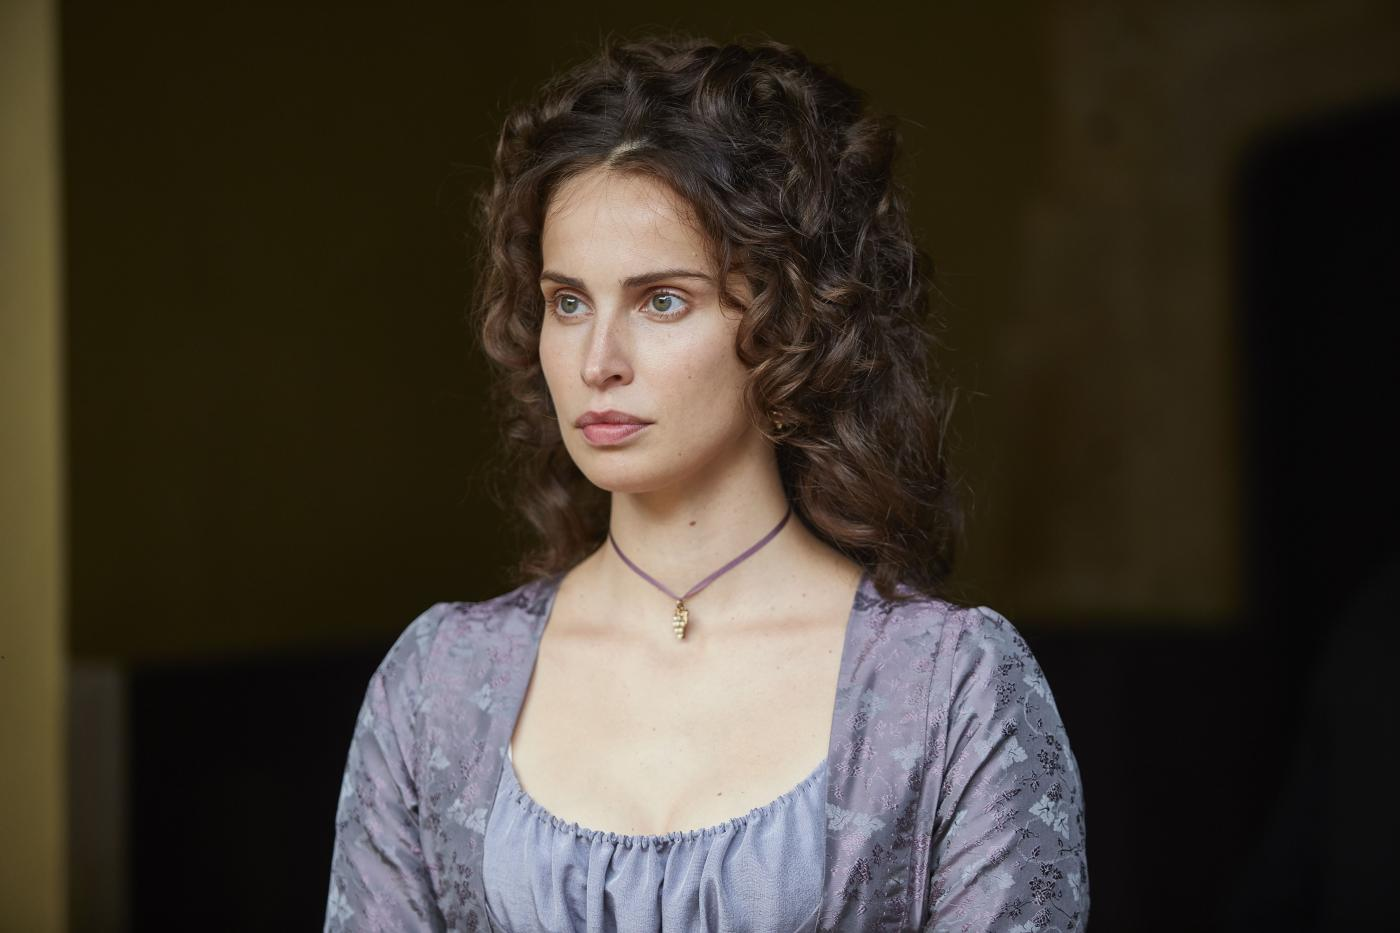 Heida Reed as Elizabeth in Poldark. Photo: Mammoth Screen for BBC and MASTERPIECE